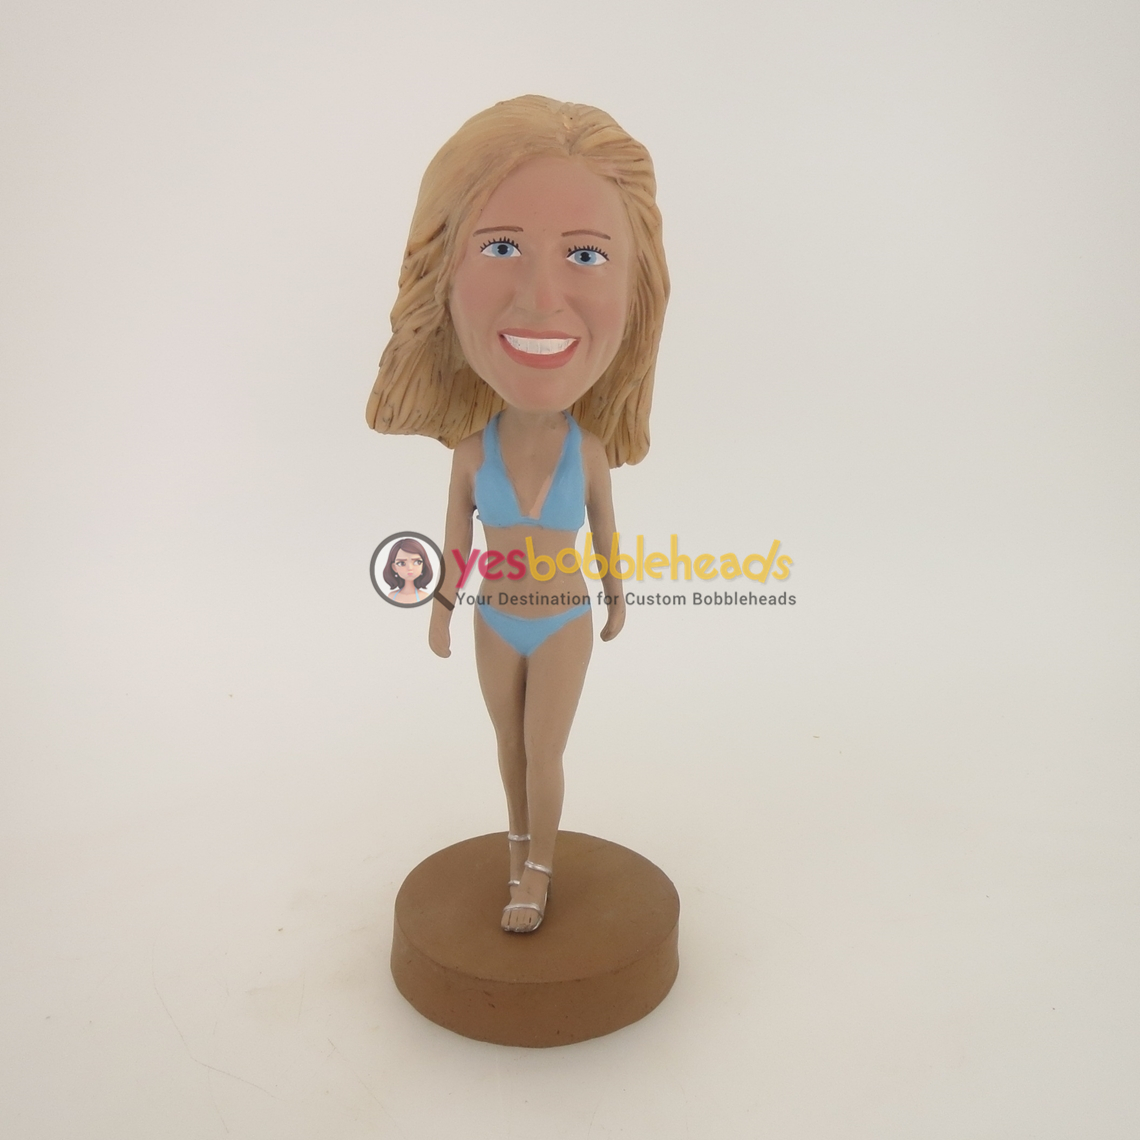 Picture of Custom Bobblehead Doll: A Bikini Girl